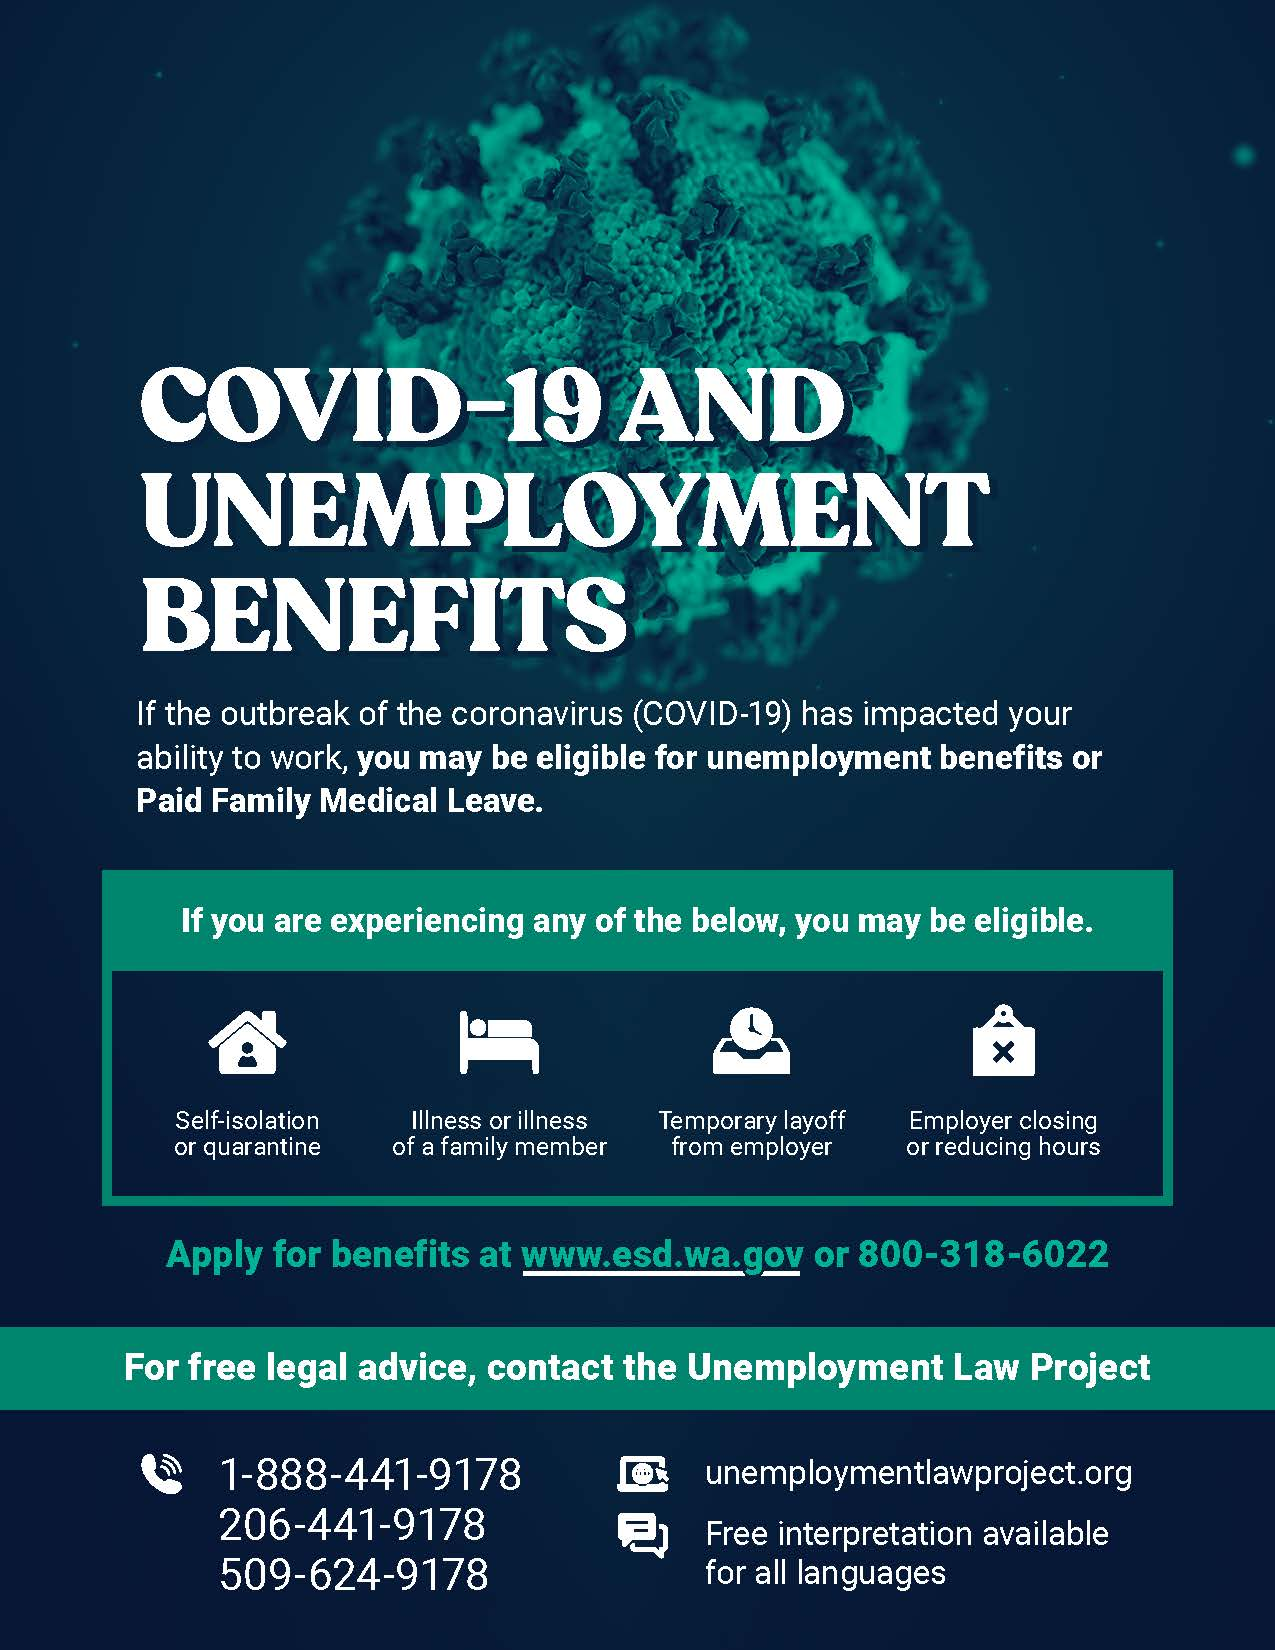 COVID-19 Unemployement Benefits Flyer